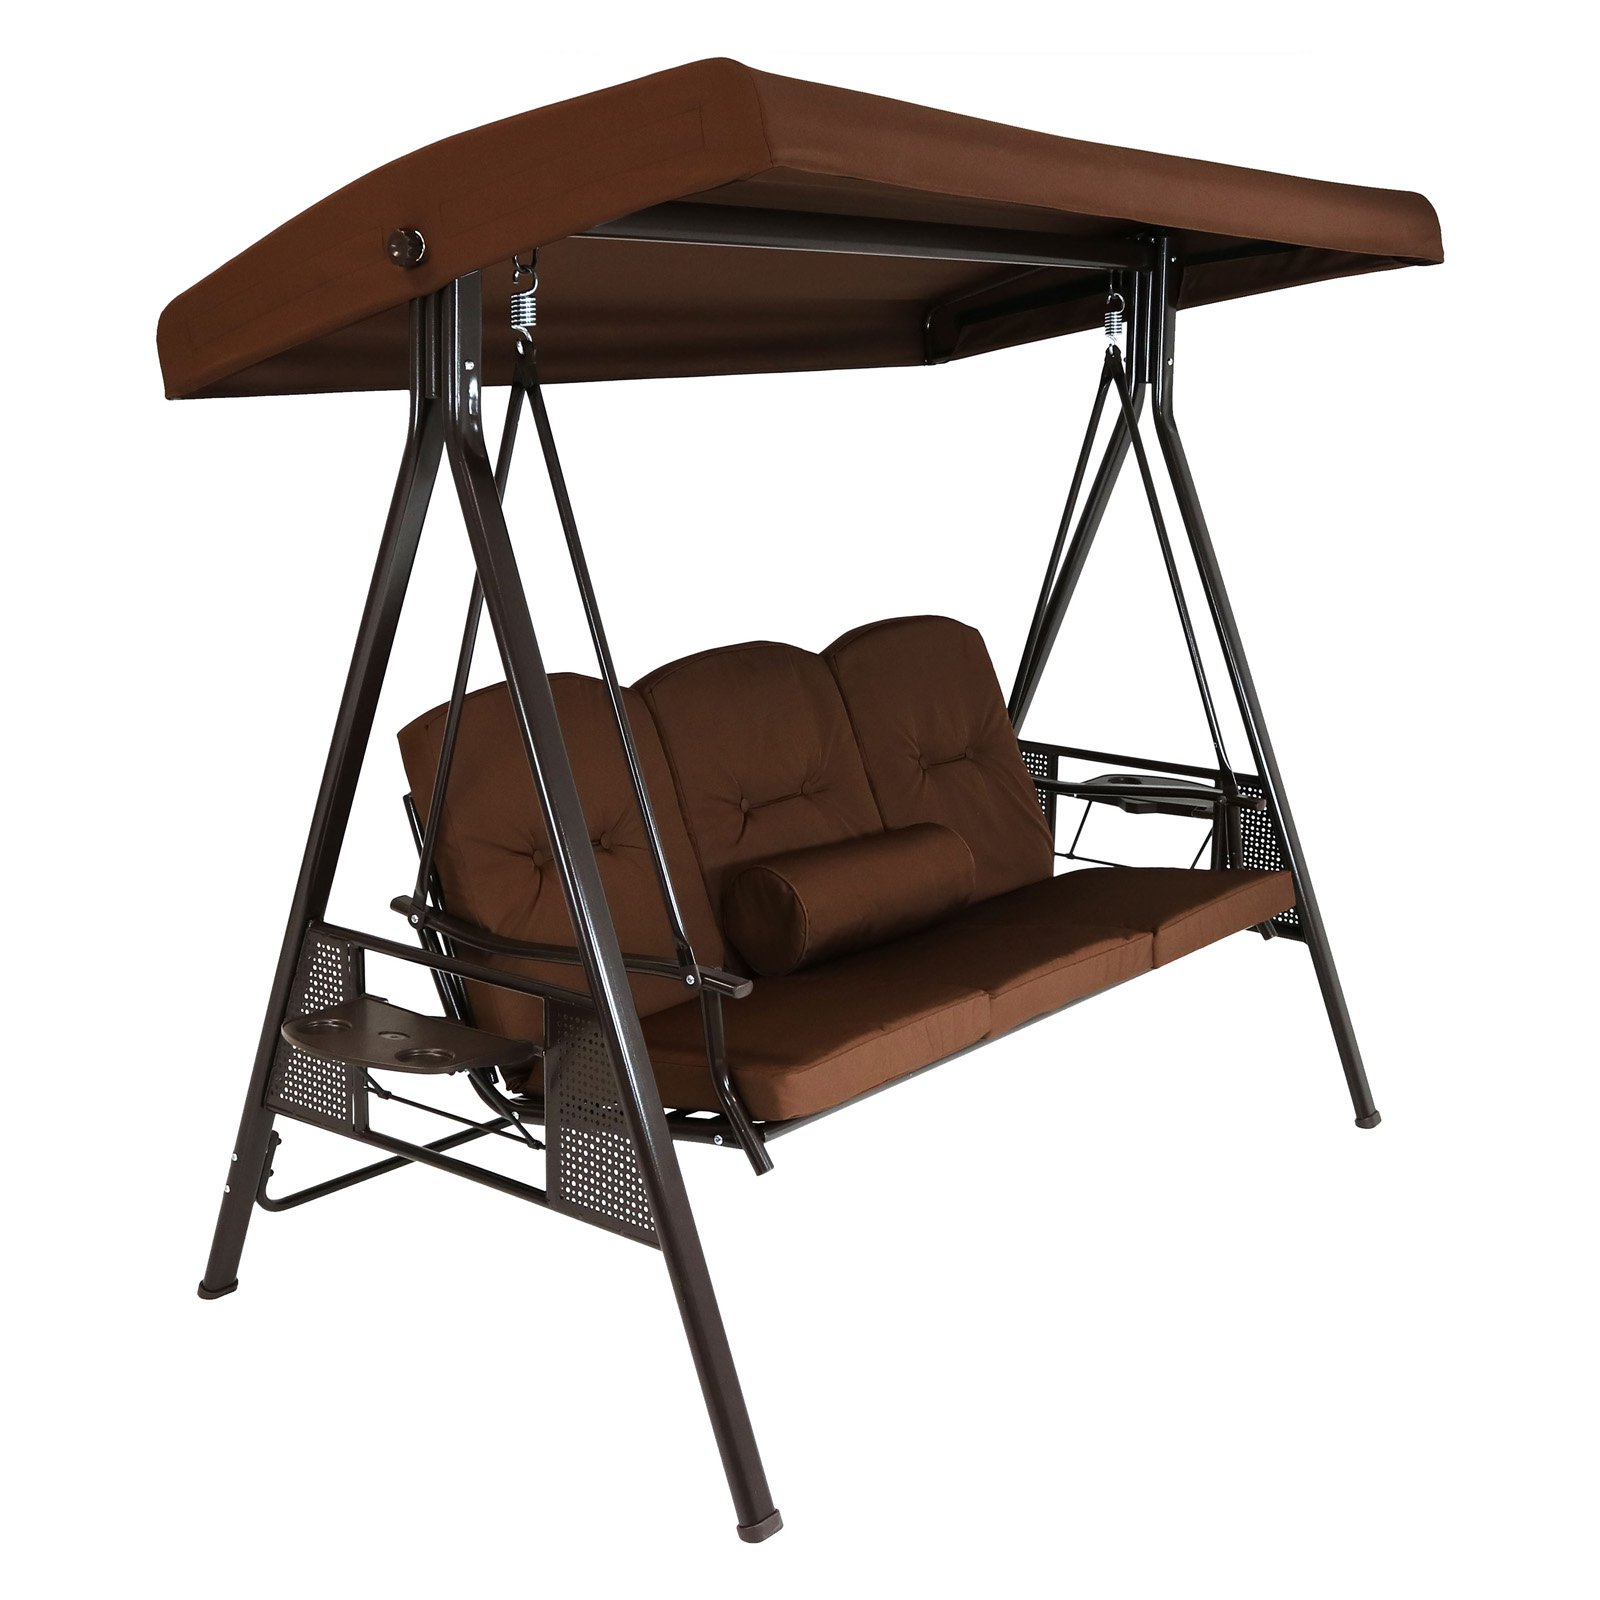 Sunnydaze Decor 3 Person Adjustable Tilt Canopy Patio Swing In 3 Person Brown Steel Outdoor Swings (View 2 of 25)